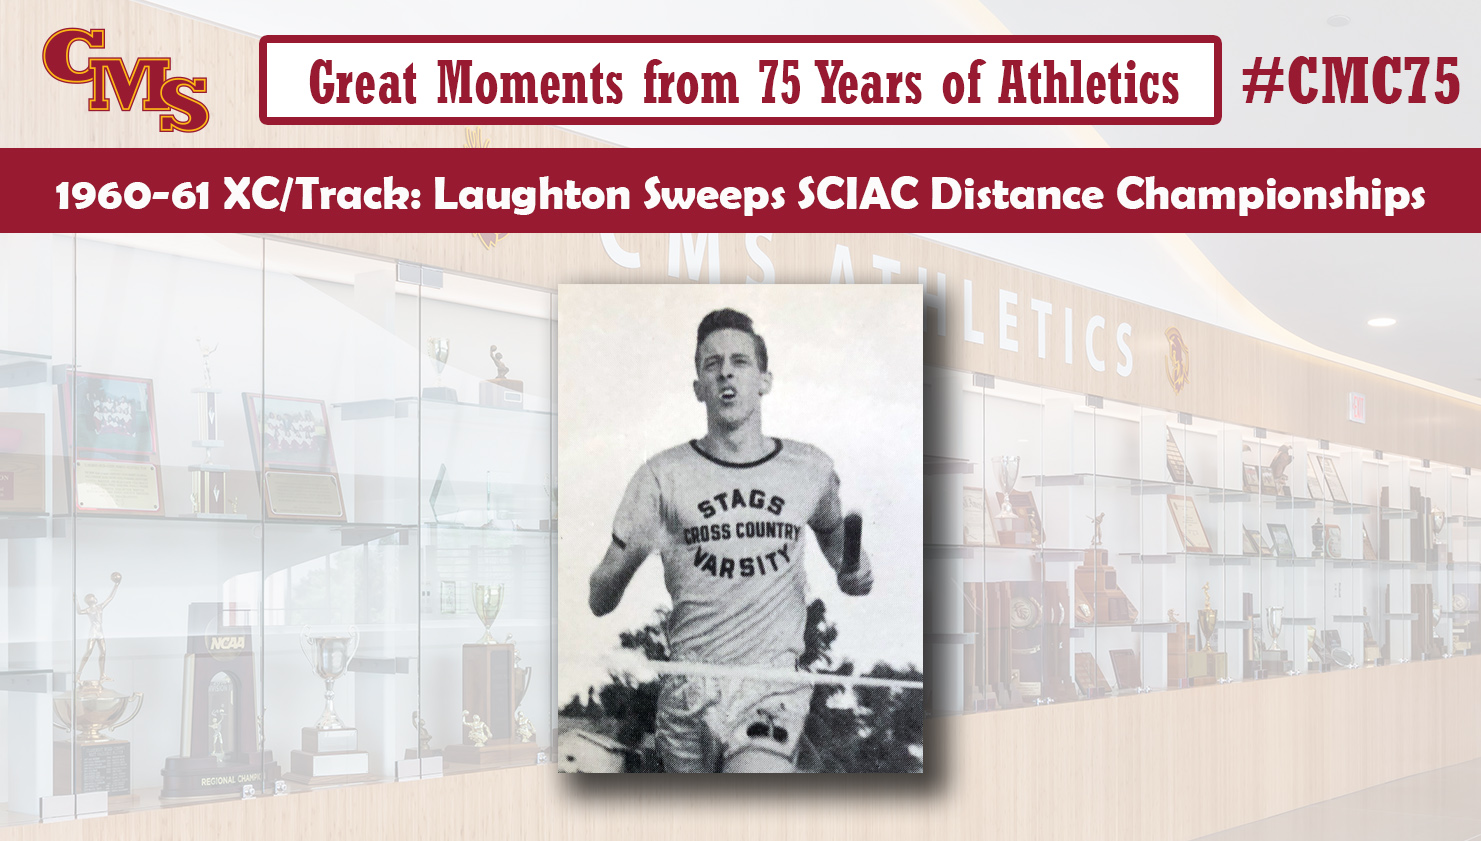 Ed Laughton posing for an action photo. Words over the text read: Great Moments from 75 Years of Athletics, 1960-61 XC/Track: Laughton Sweeps SCIAC Distance Championships